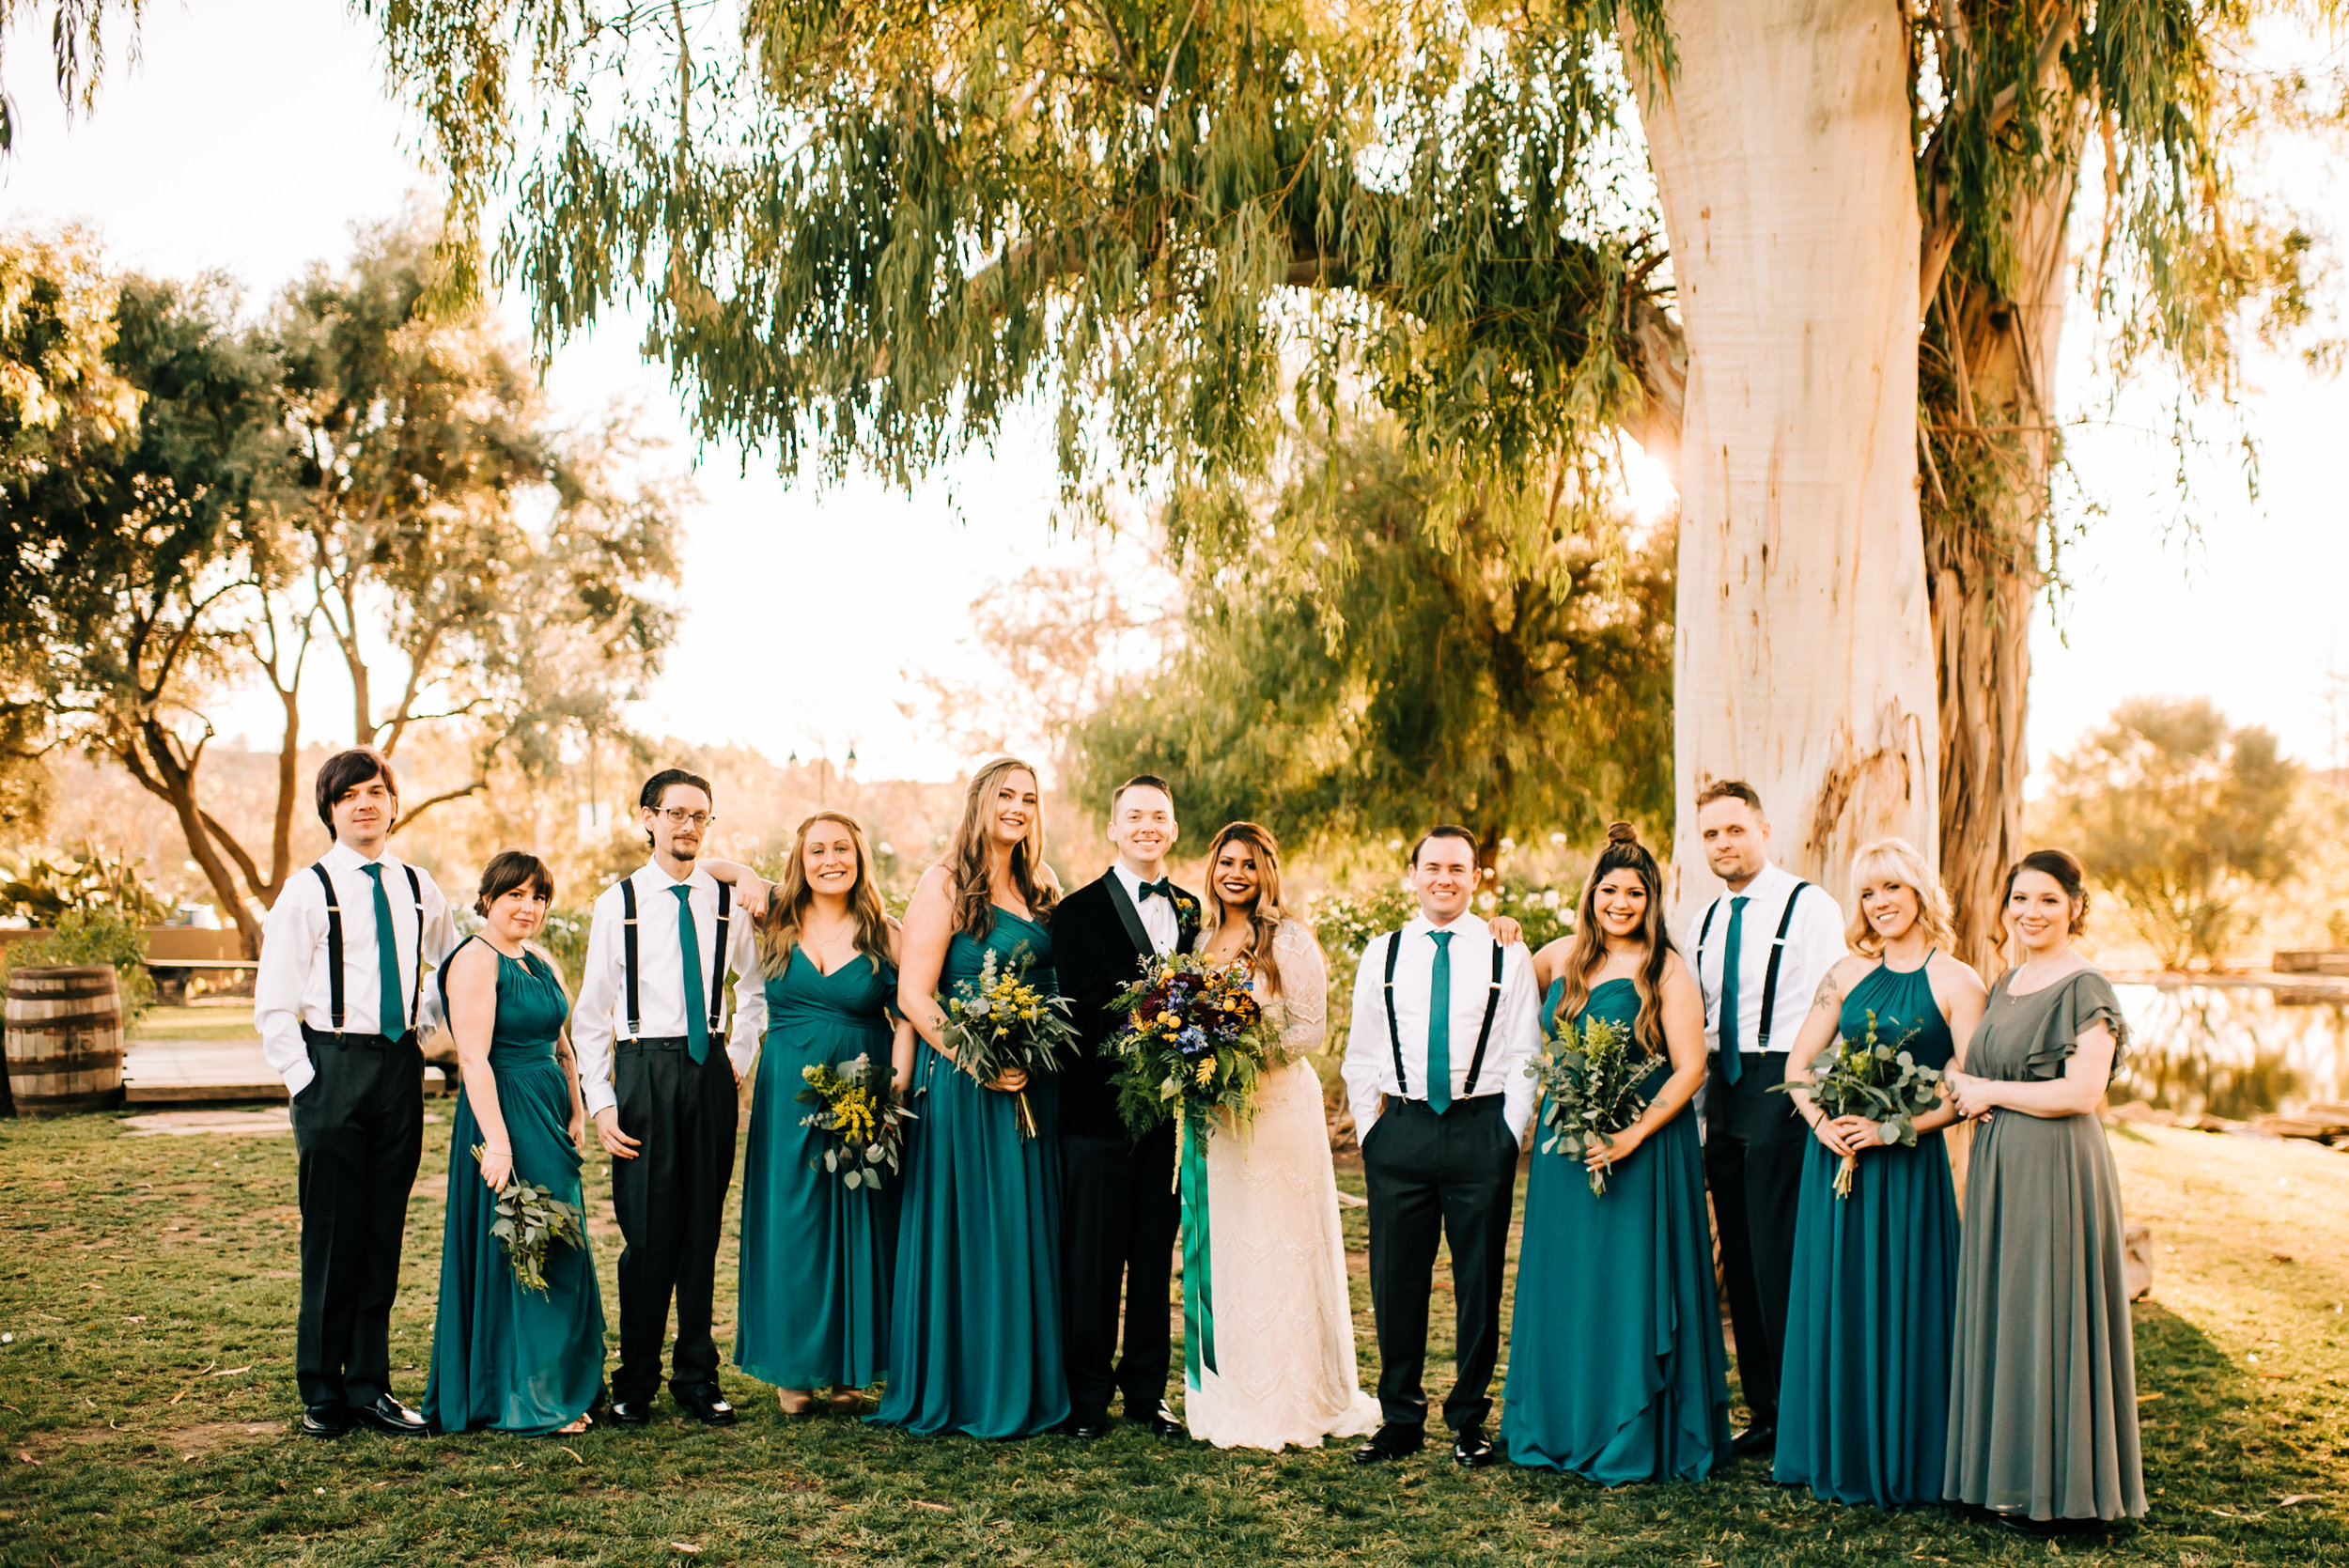 bay area nontraditional wedding photographer southern california boho wedding love light magic san francisco oakland northern california-711.jpg